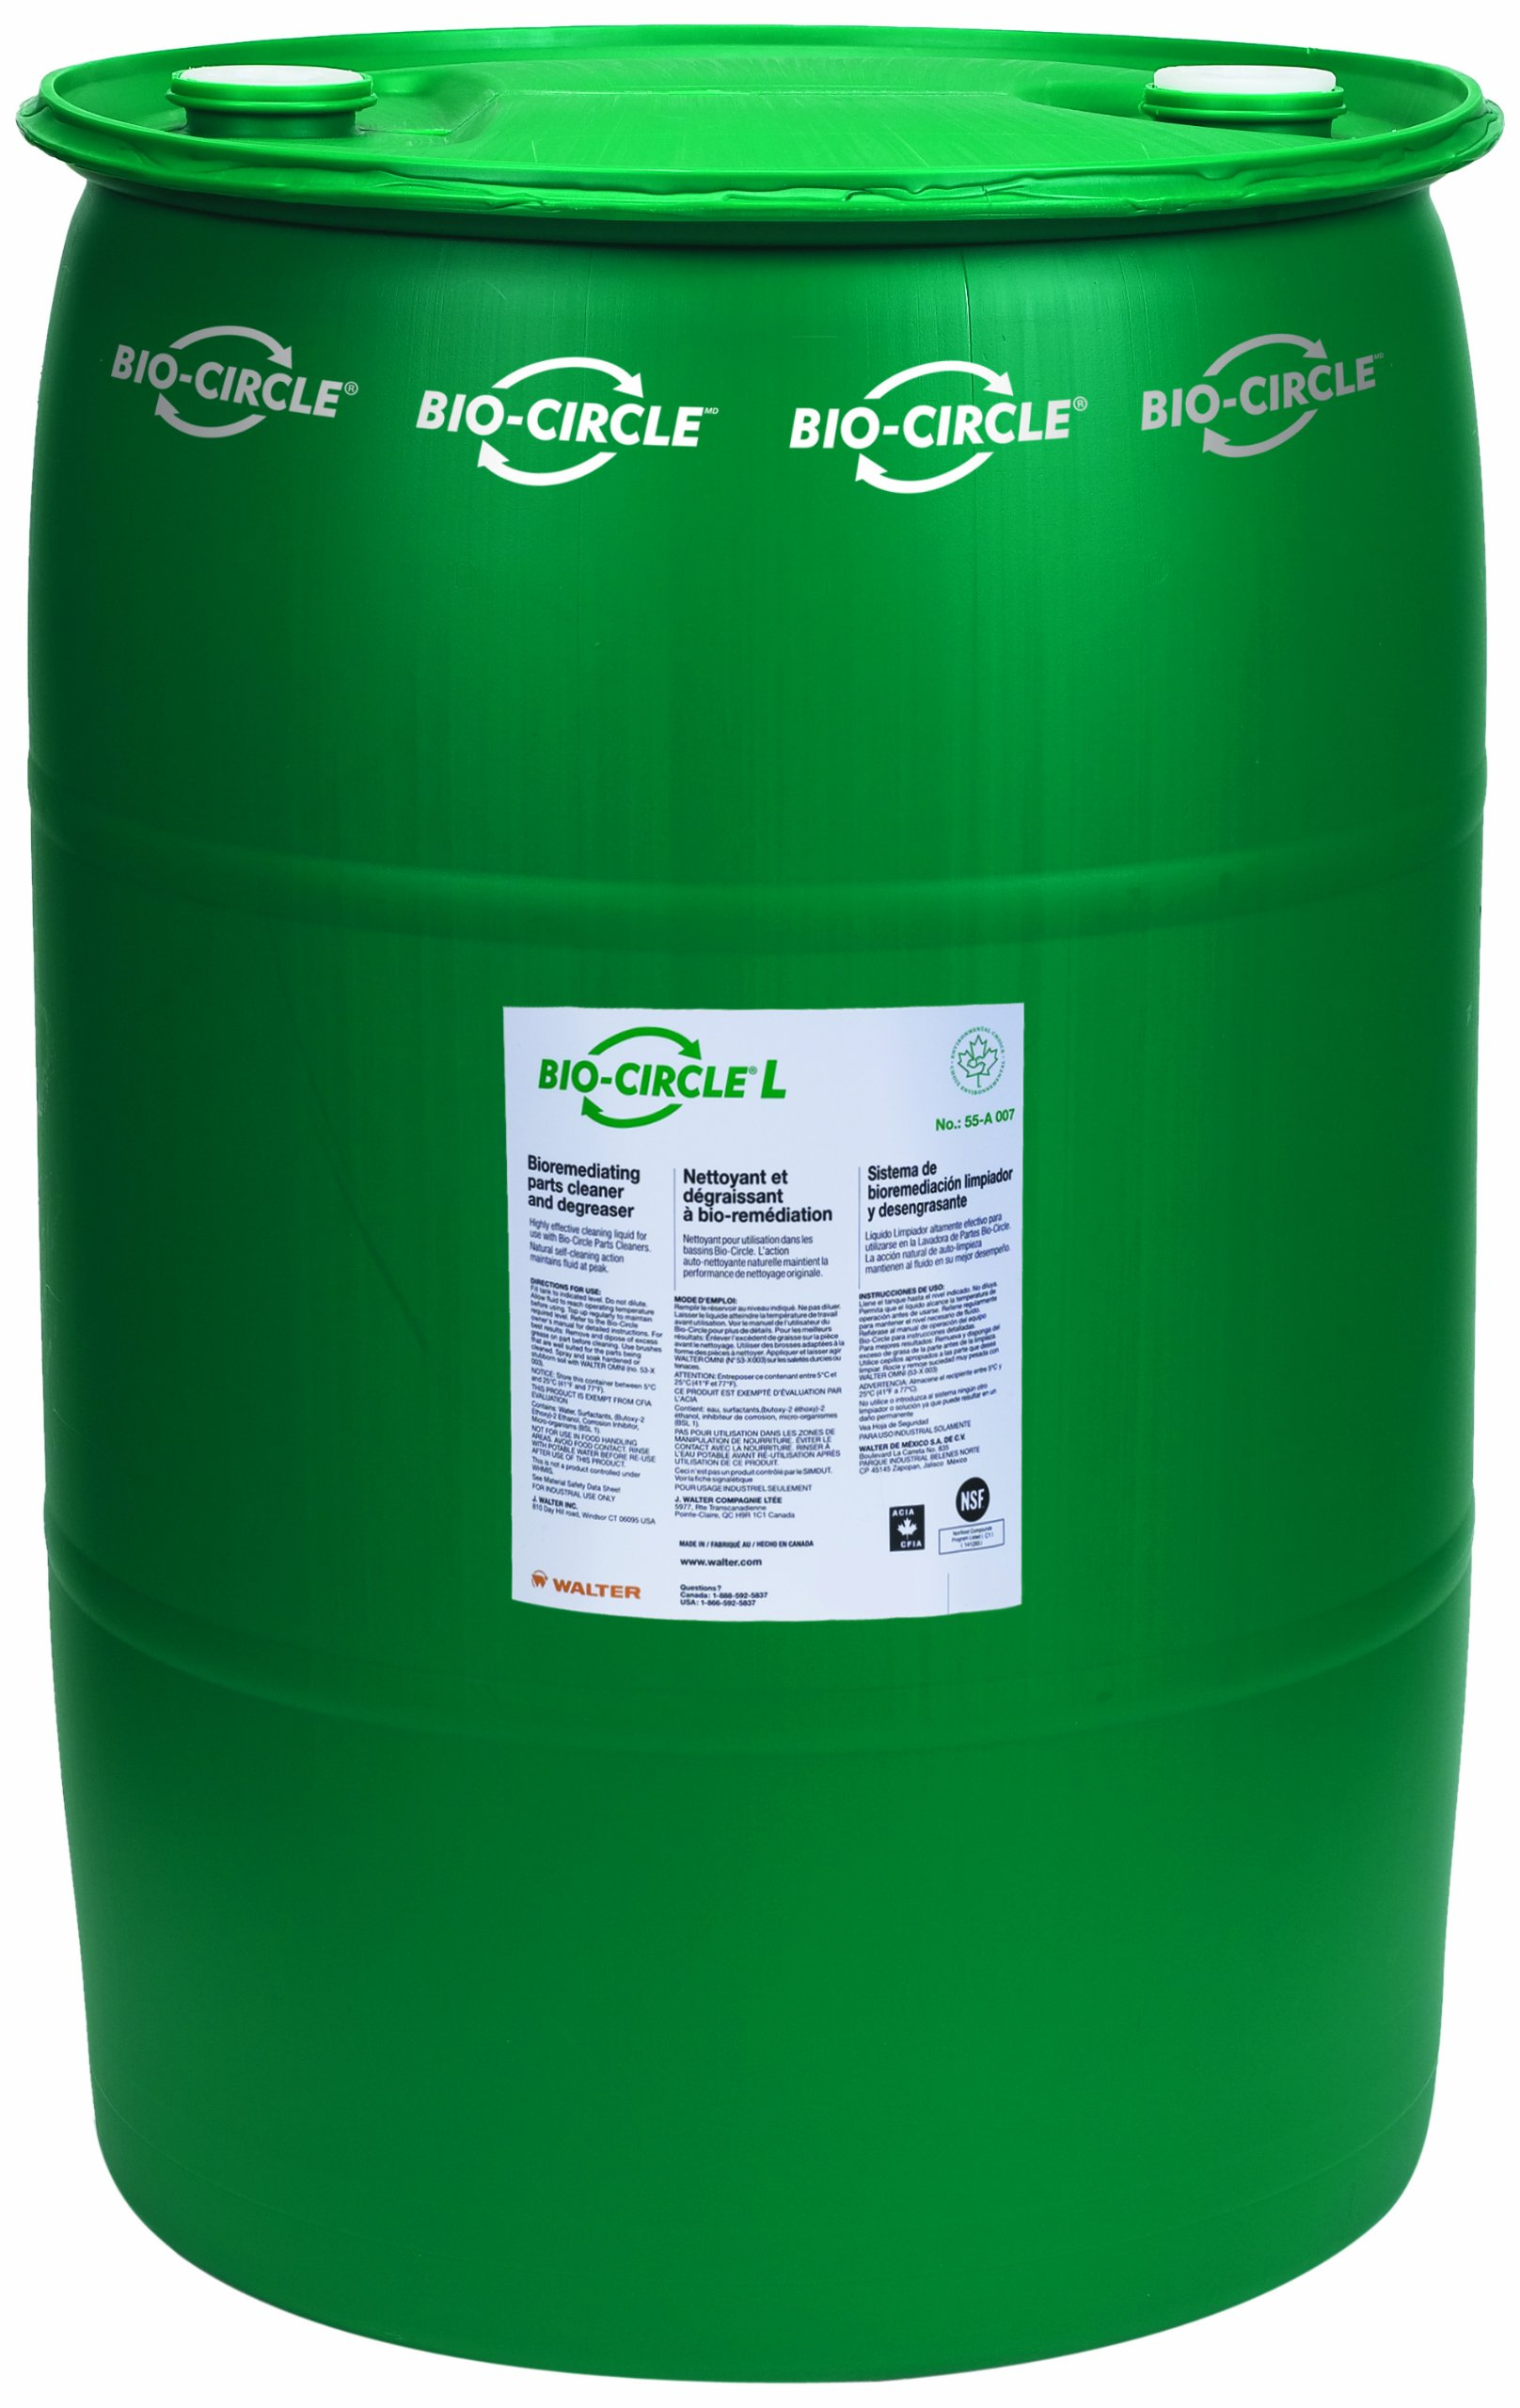 Walter 55A008 Bio-Circle L Industrial Parts Cleaner and Degreaser, 55 gallon drum